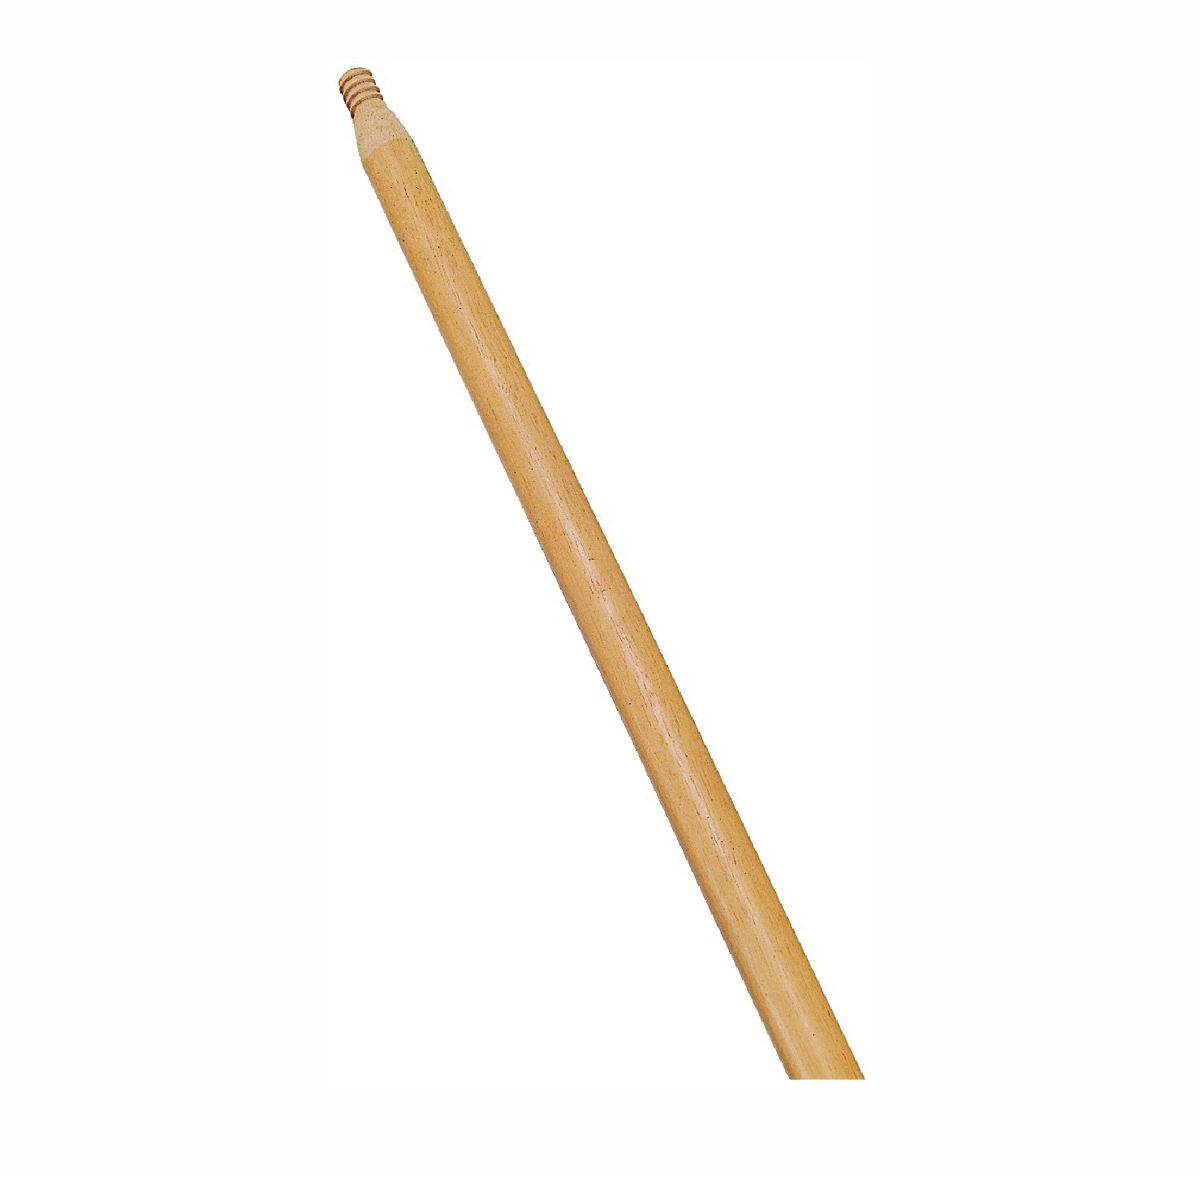 Picture of Rubbermaid FG635100LAC Broom Handle, 1-5/16 in Dia, 54 in L, Threaded, Wood, Natural